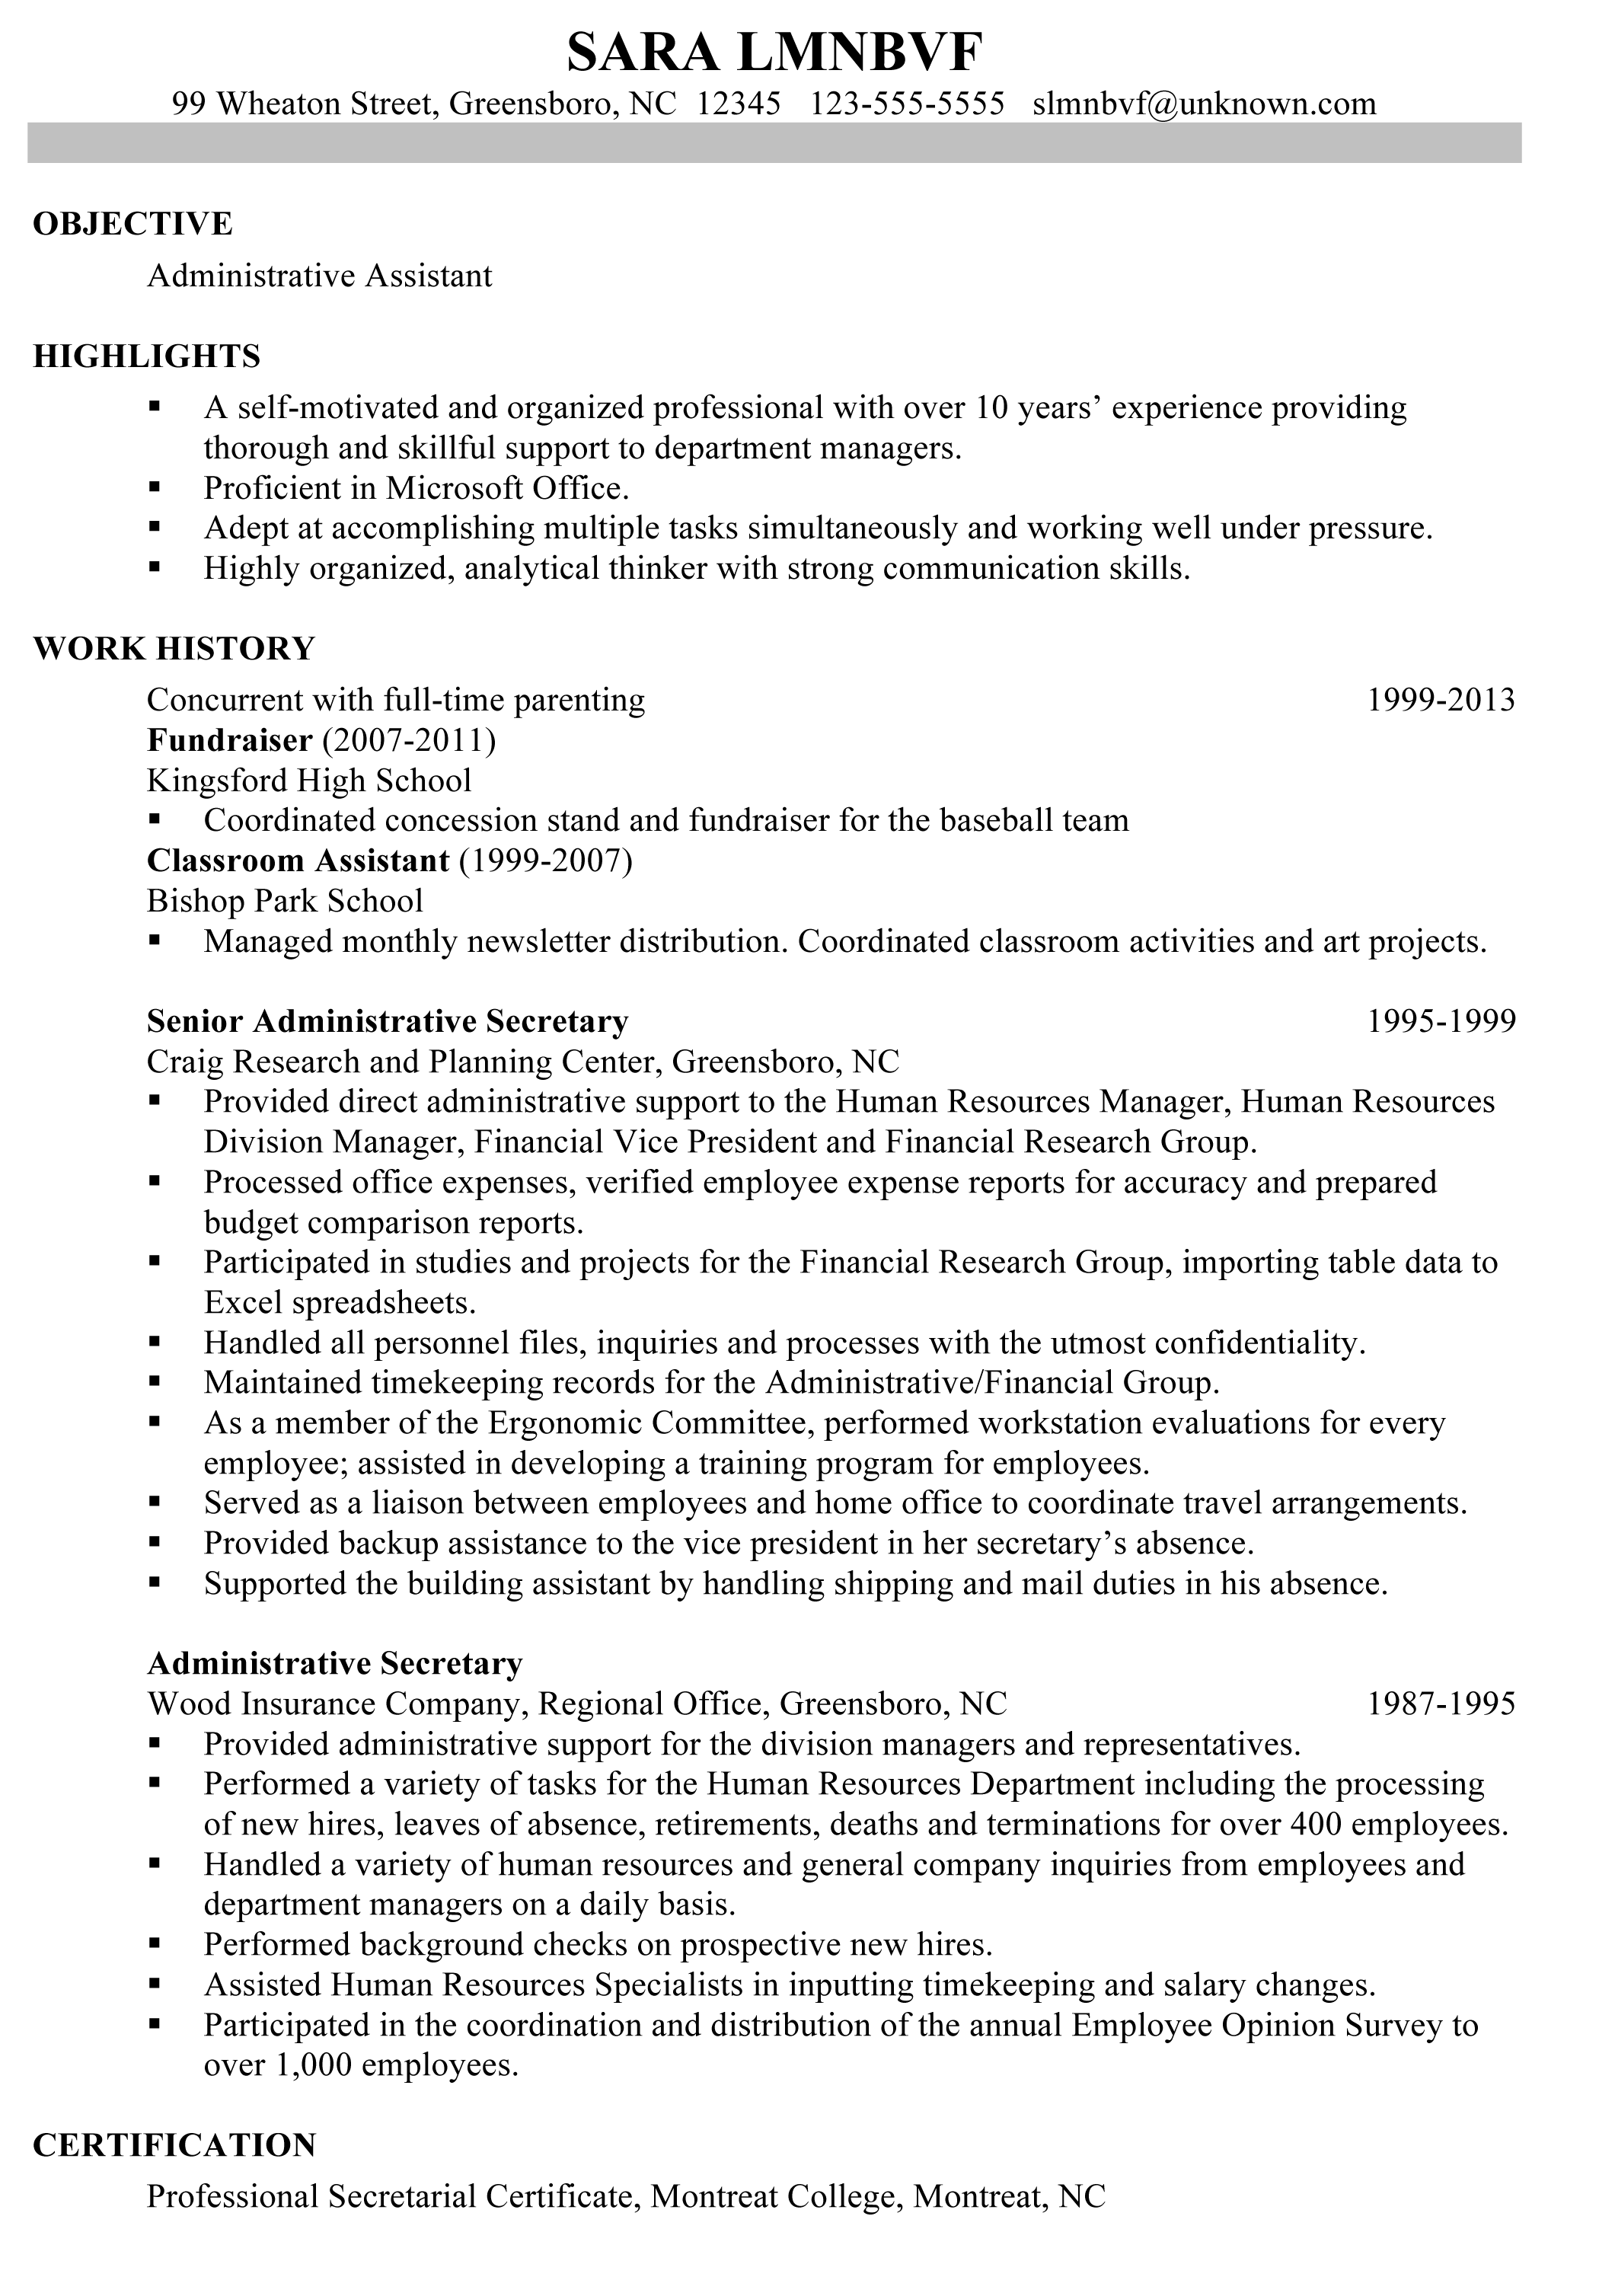 Administrative Assistant Resume Example Chronological Resume Sample Administrative Assistant  Resume